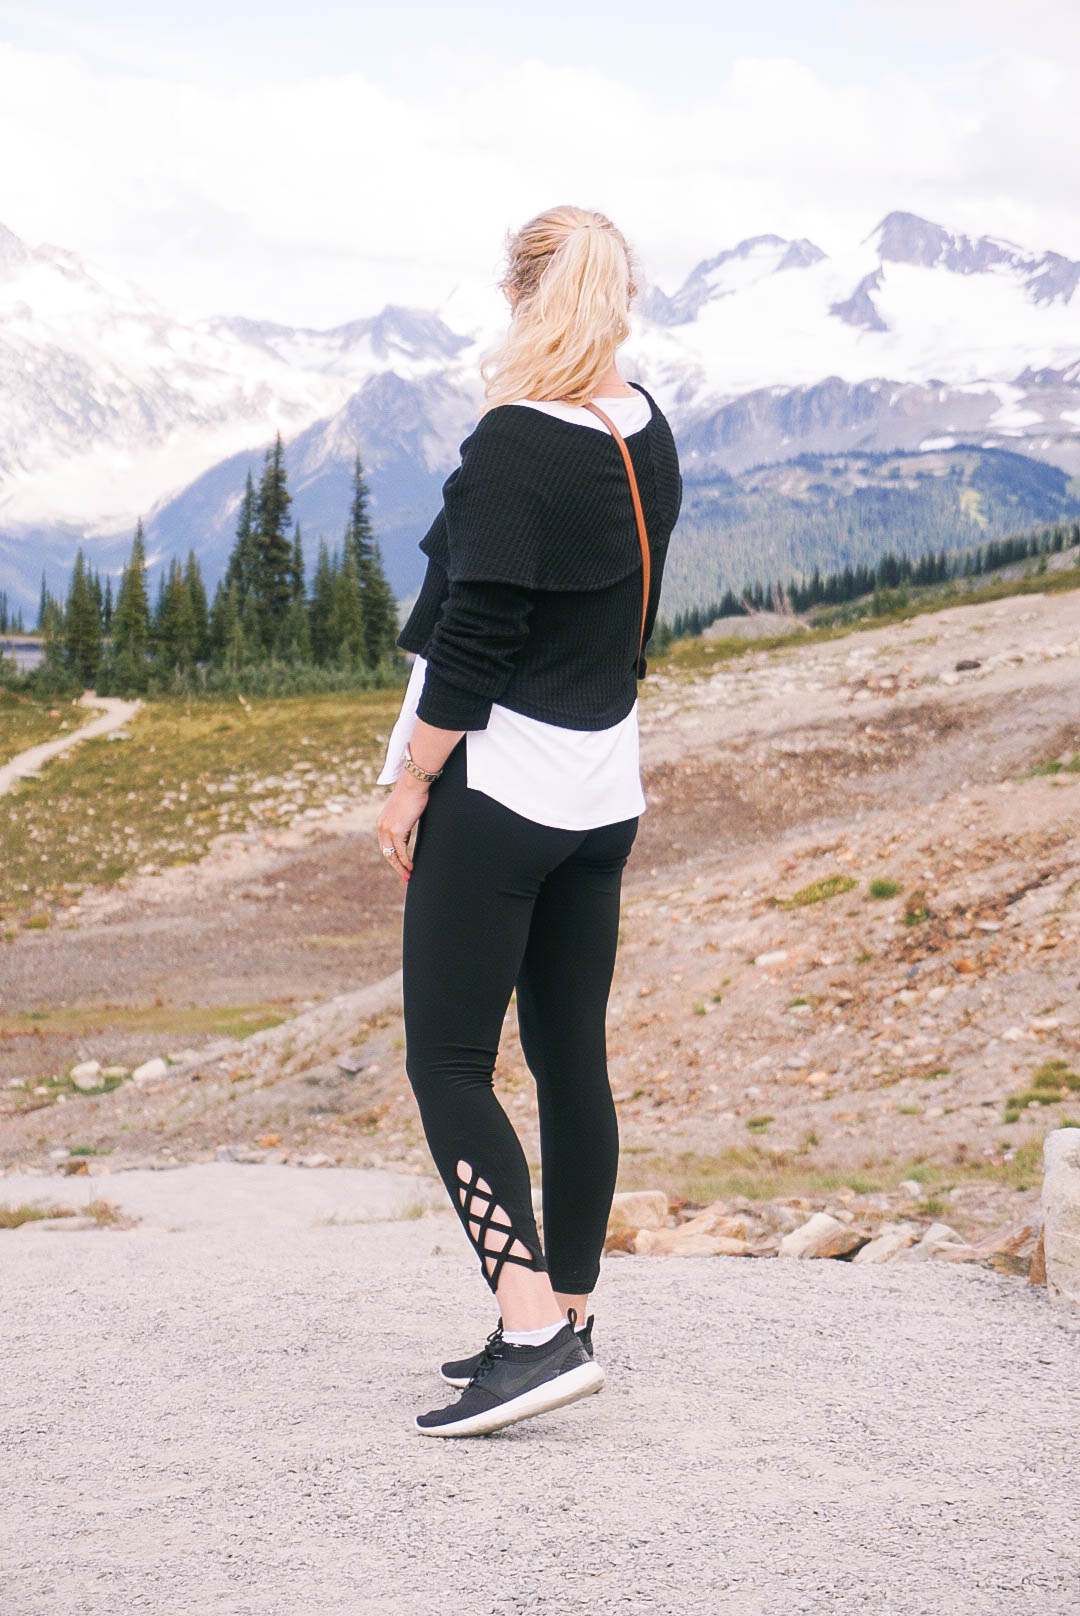 Sympli Clothing-Comfortable Clothing for Travel-Travel Style-What to wear when traveling-Have Need Want-Whistler-Visiting Whistler-Peak 2 Peak Whistler 14